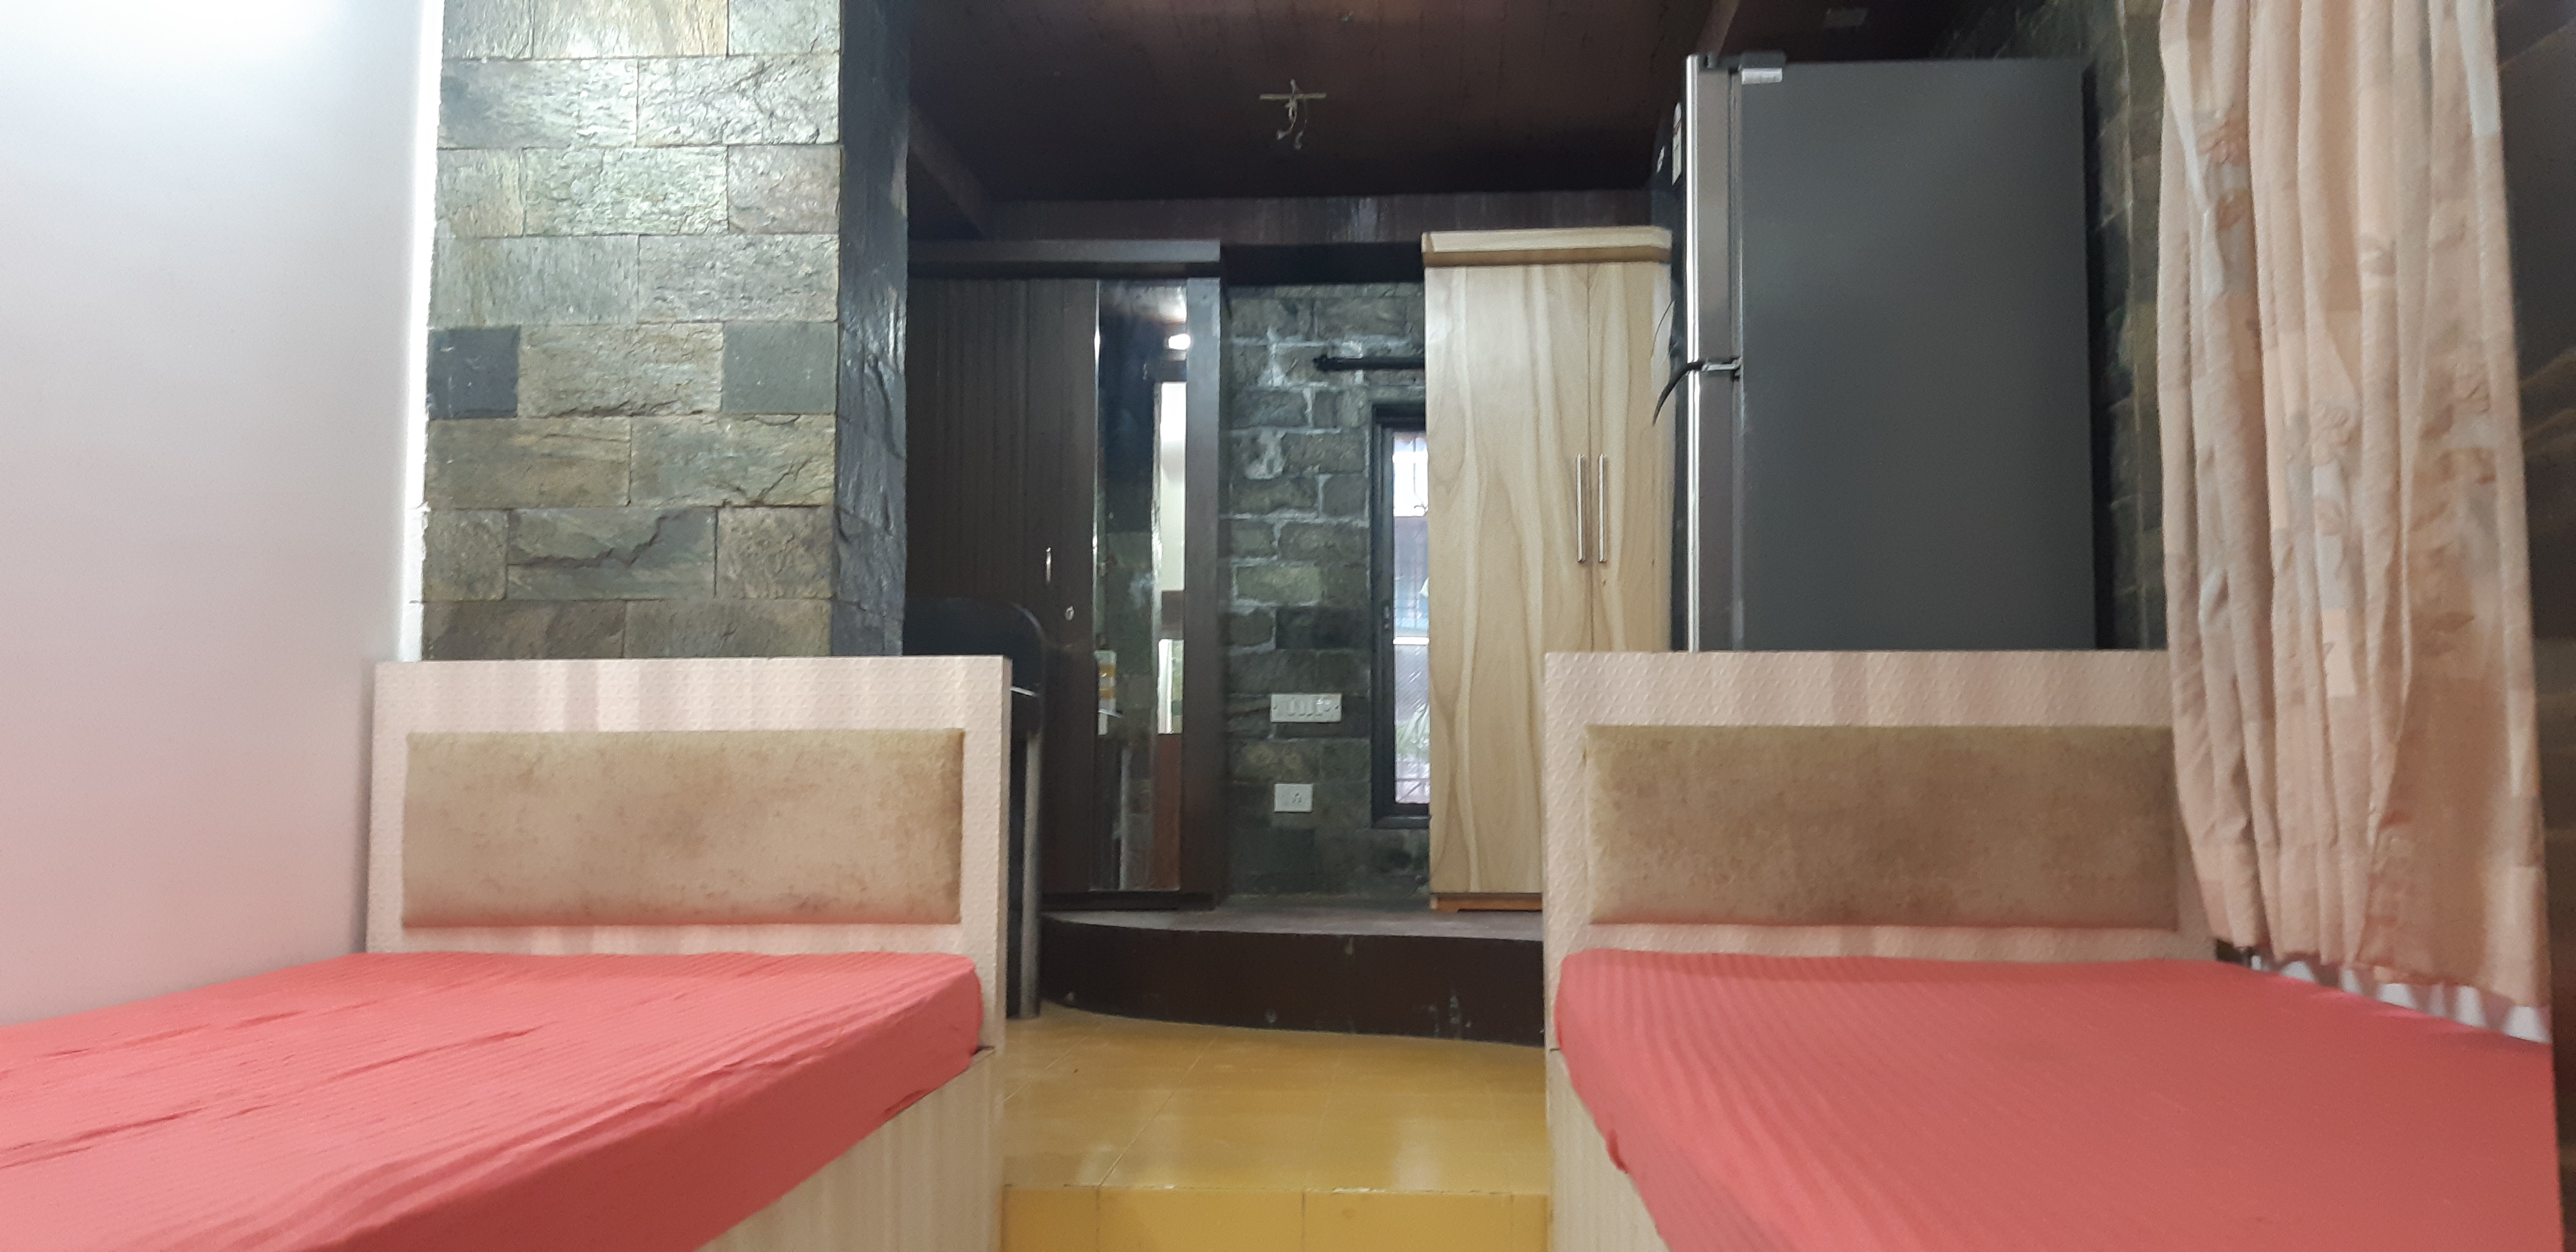 Self Contained Bedroom